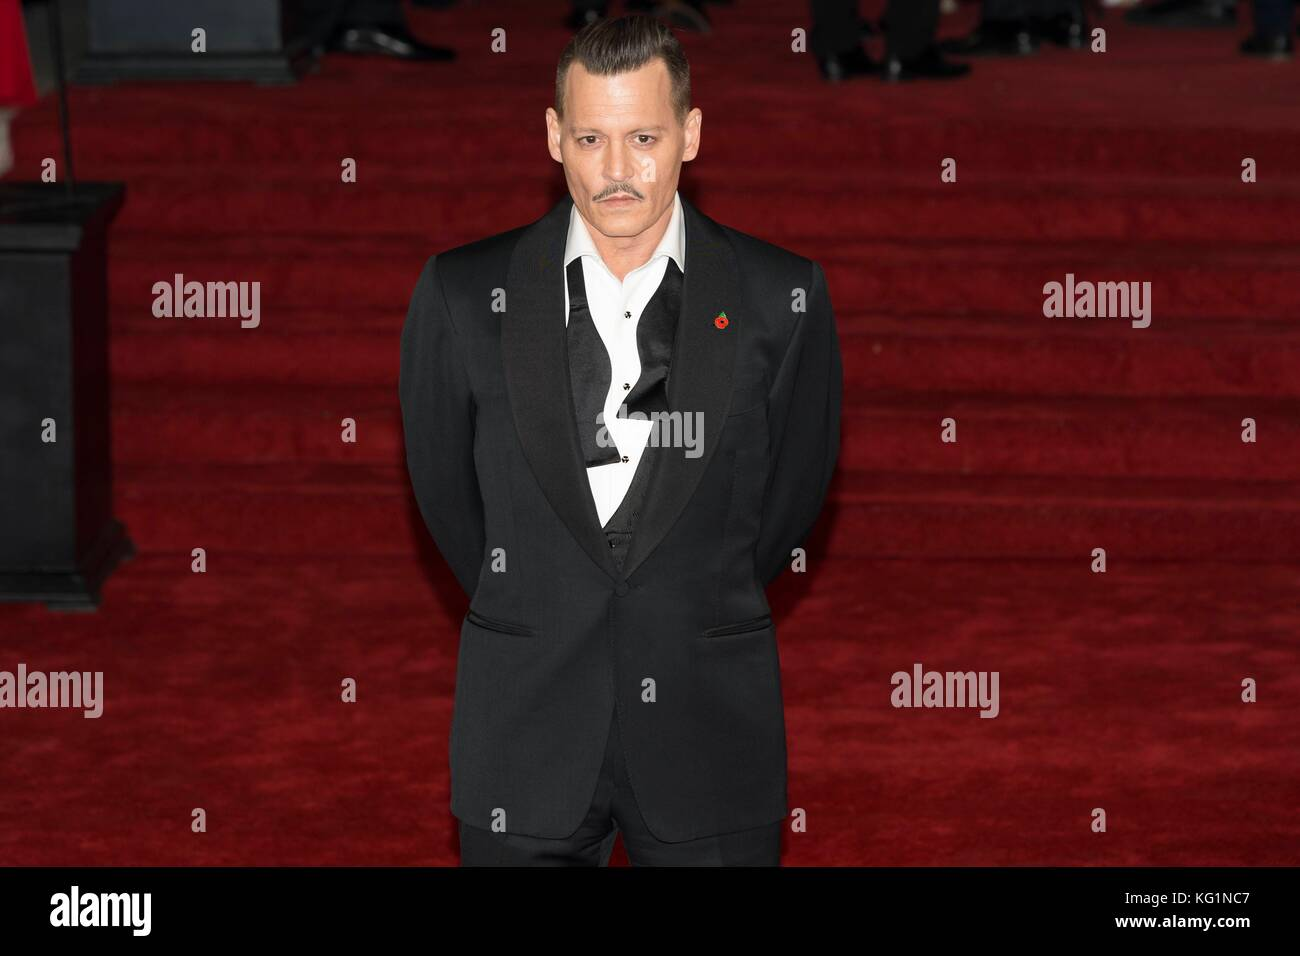 London, UK. 02nd Nov, 2017. Johnny Depp attends Murder On The Orient Express World Premiere - London, England (02/11/2017) - Stock Image